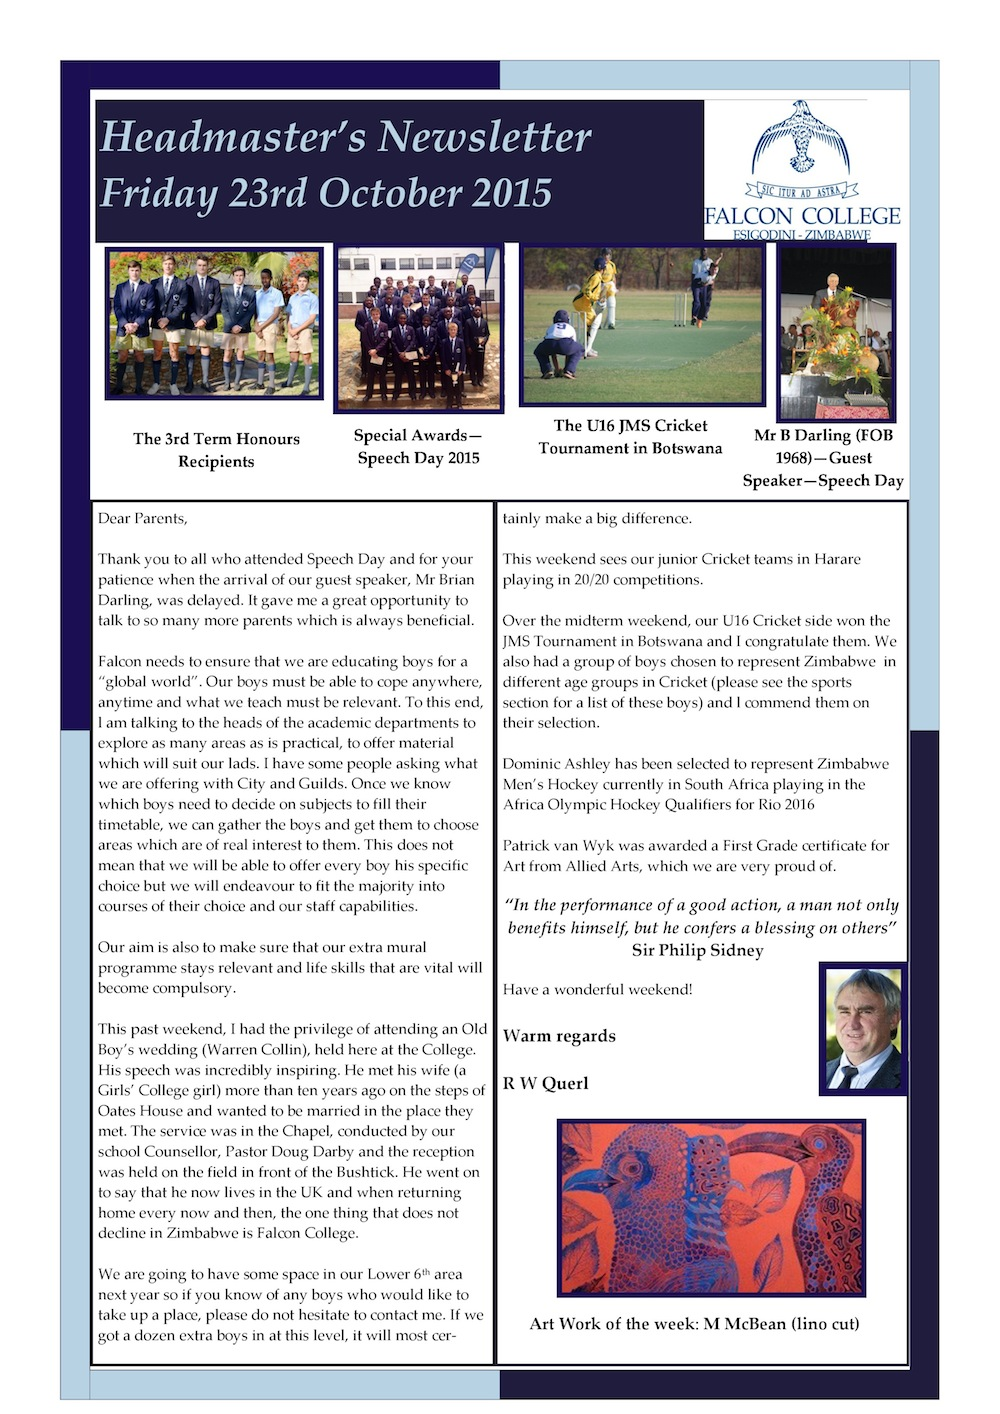 Headmaster's Newsletter Friday 23rd October 2015 edited-page-0